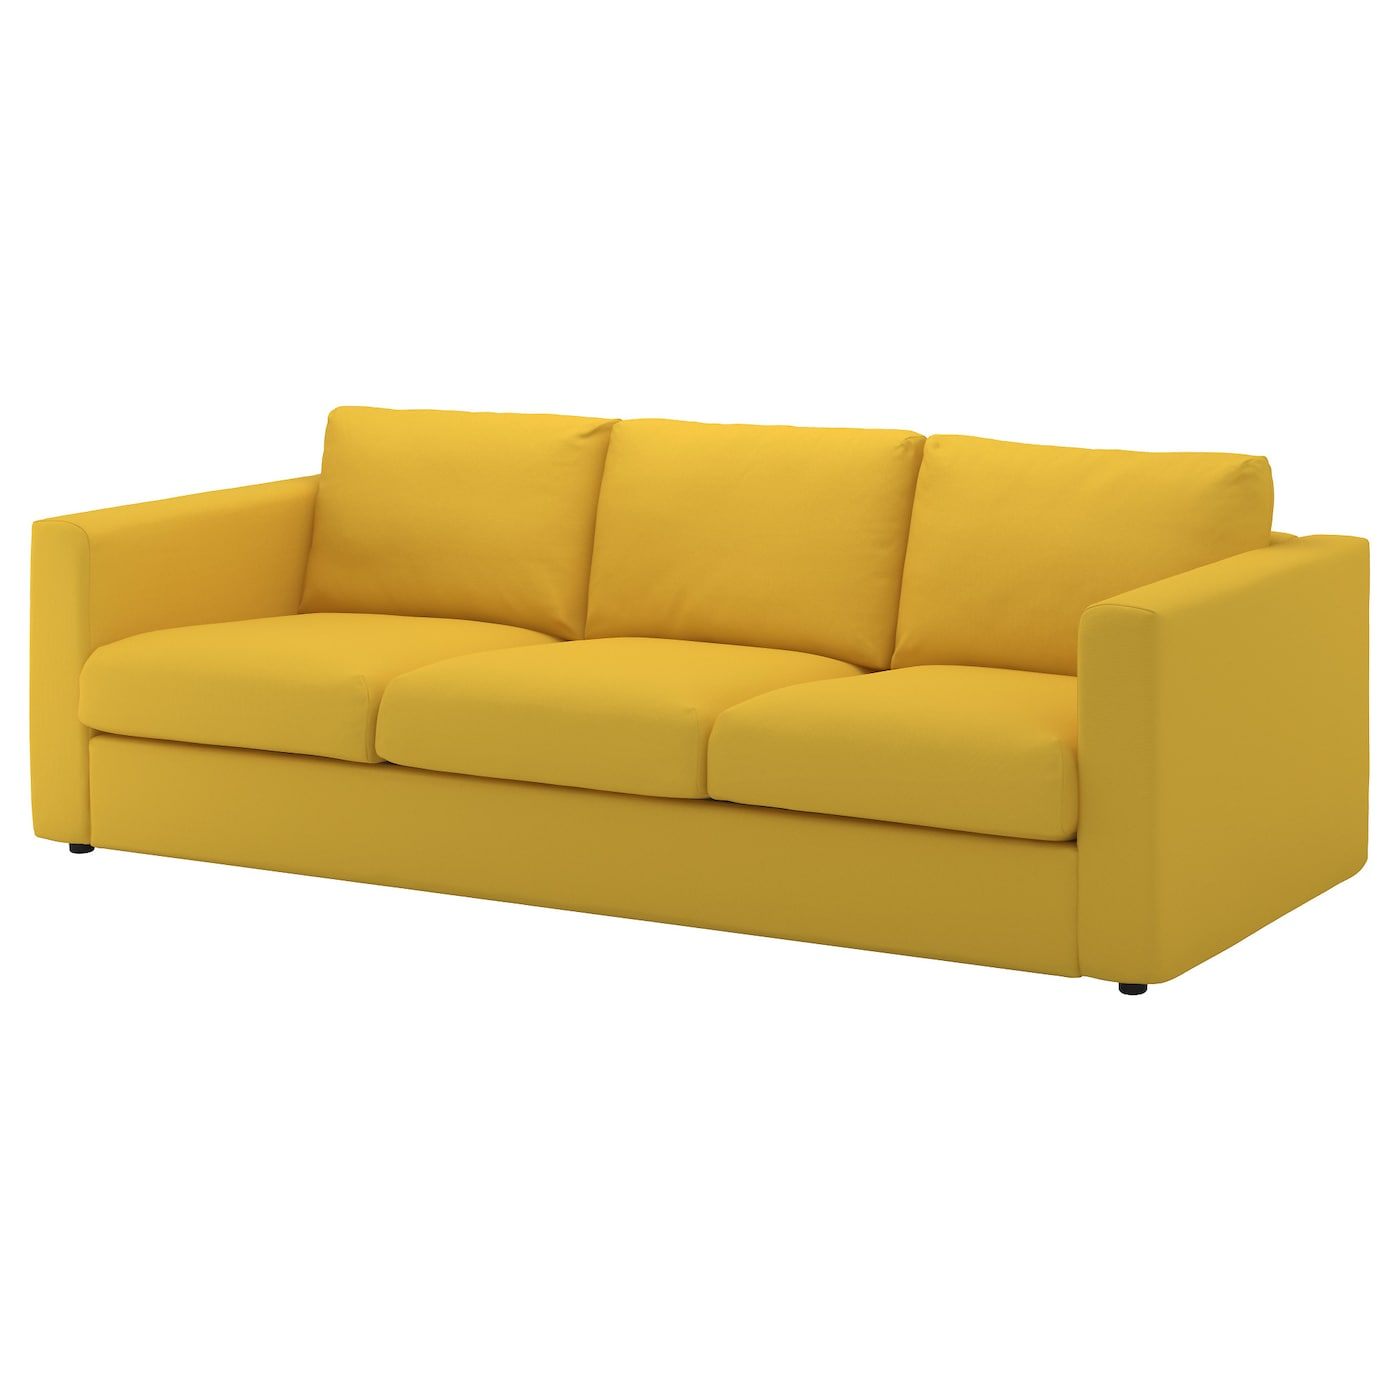 Ikea yellow sofa vimle 3 seat sofa with chaise longue for 3 seat sofa with chaise